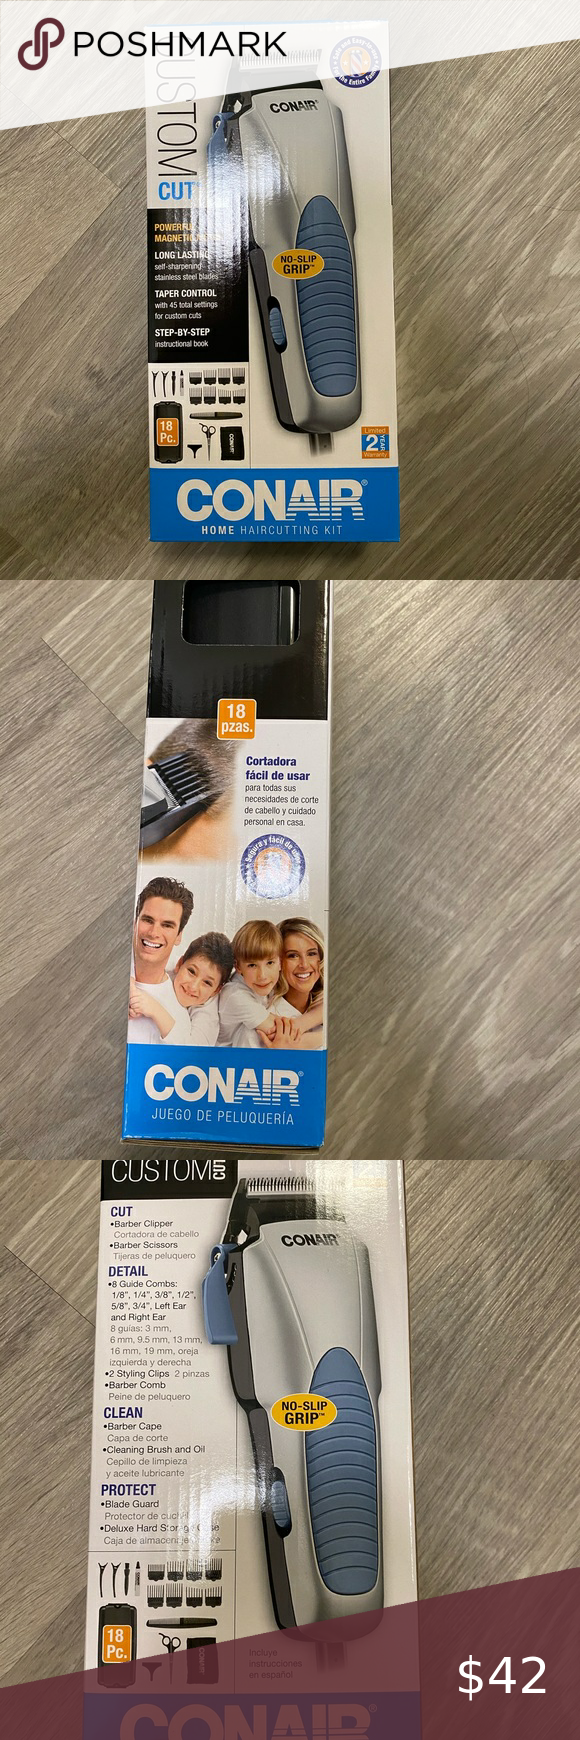 Conair Home Haircutting Kit New In 2020 Conair Kit Things To Sell